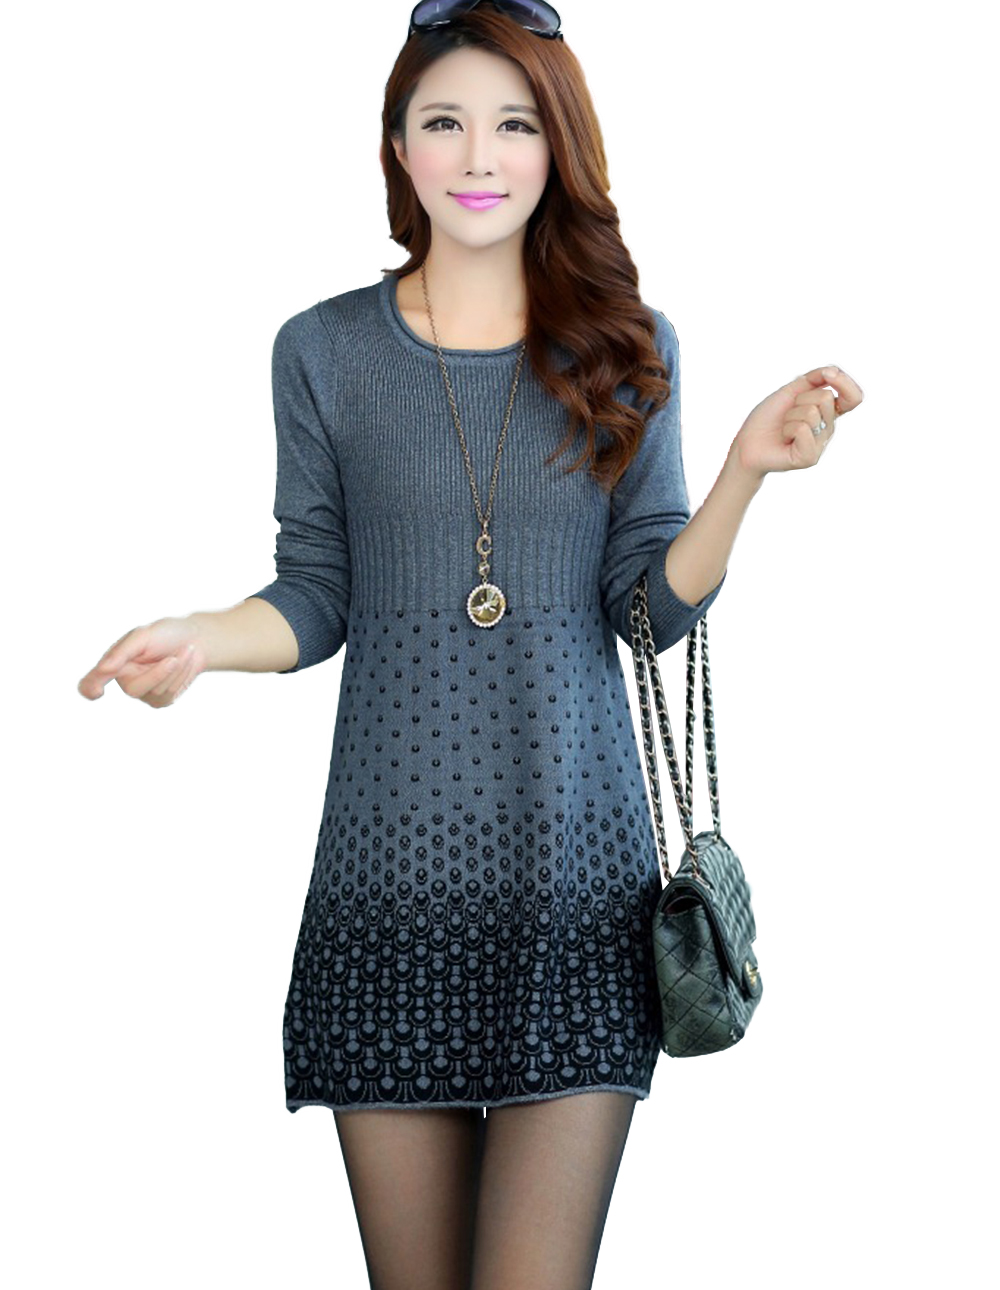 Stay warm in a cozy sweater dress from Lulus! Long sleeve dresses, cable knit dresses, turtleneck dresses and more will keep you looking cute when the temps drop. Pair with cute coats and warm accessories for the perfect fall or winter outfit. Free shipping + returns! Sweater Dresses .